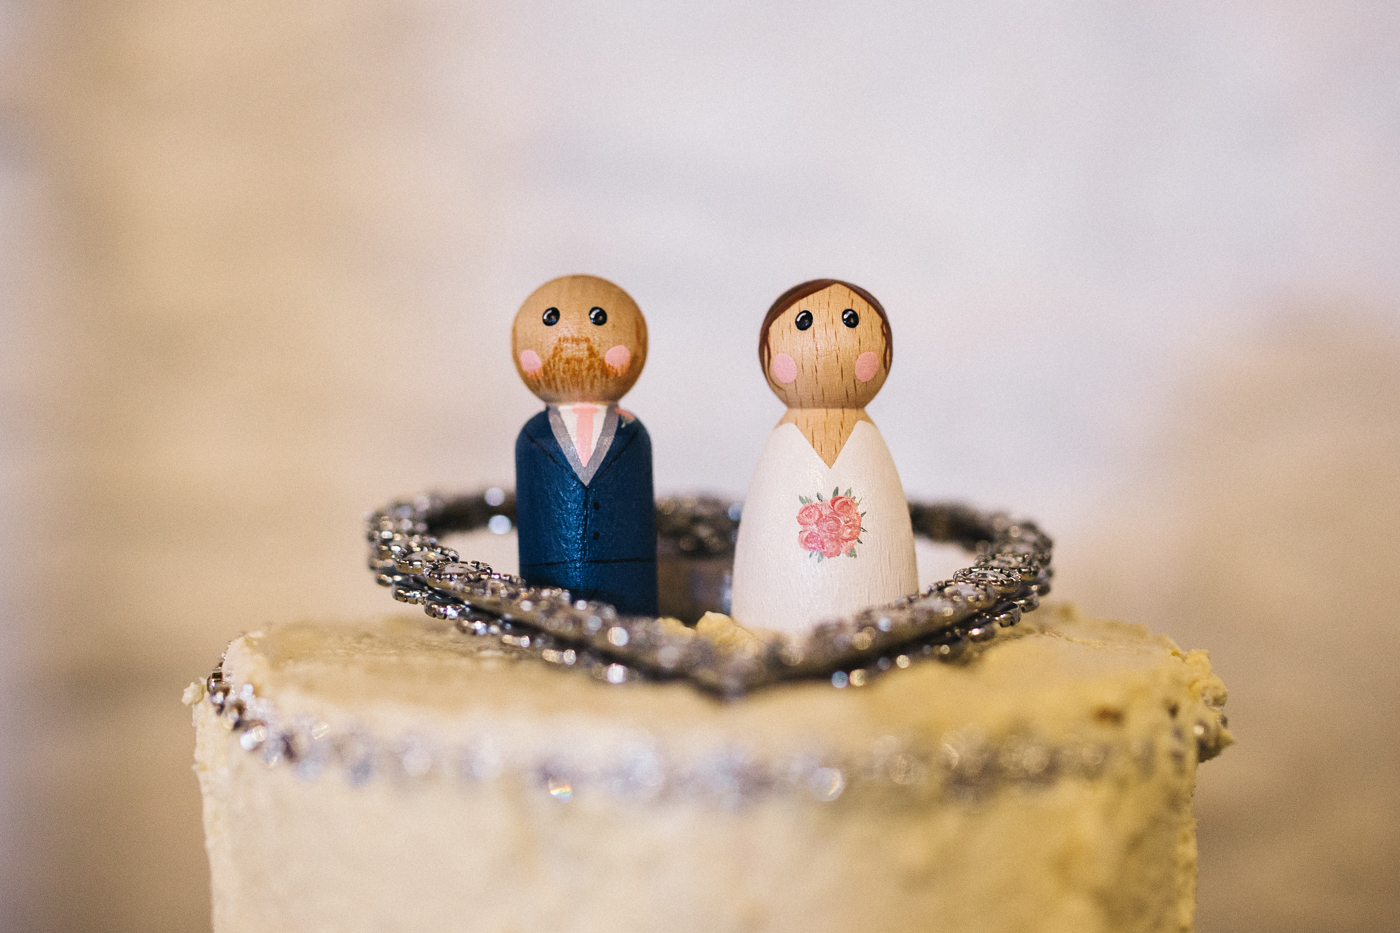 wooden peg doll wedding cake toppers. spring barn wedding at east riddlesden hall keighley west yorkshire wedding photographer